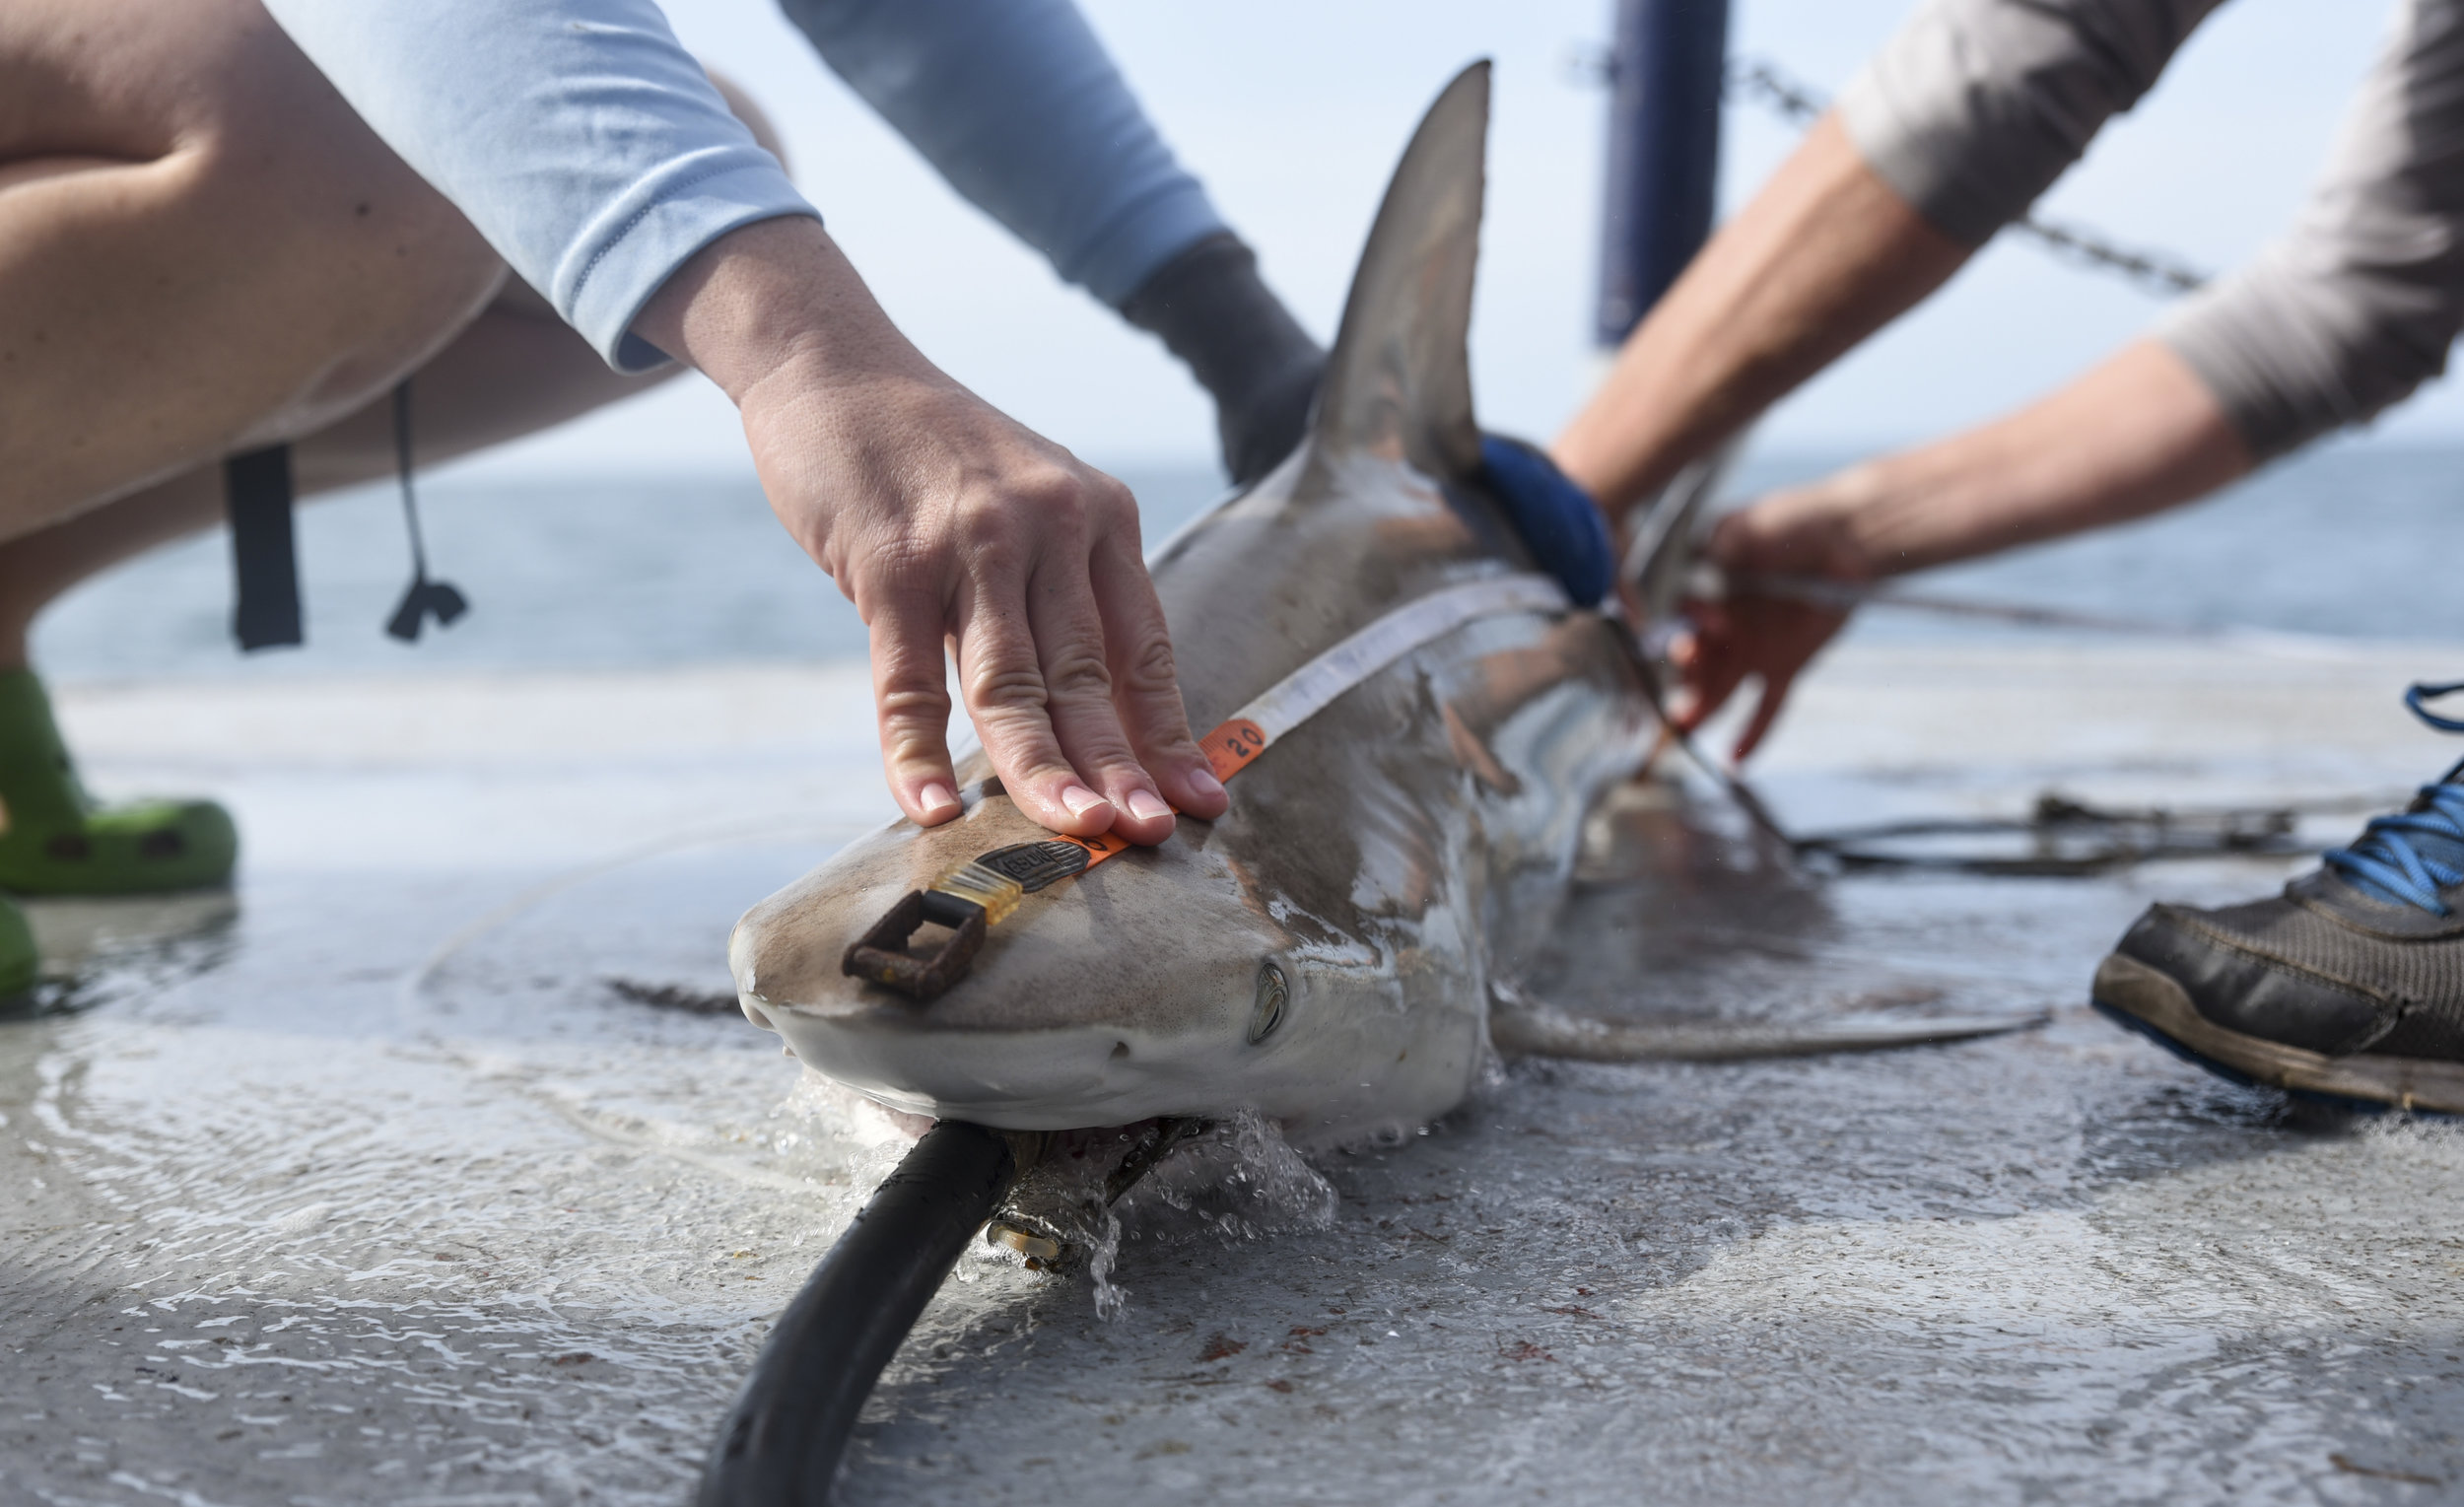 Jayne Gardiner of the New College of Florida, left, and Jack Morris of the Mote Marine Lab, measure the length of a male Blacktip shark brought aboard.A hose spouting sea water, called a resuscitation hose, is placed in the shark's mouth to allow water to flow across its gills, enabling the animal to breathe while on the boat.